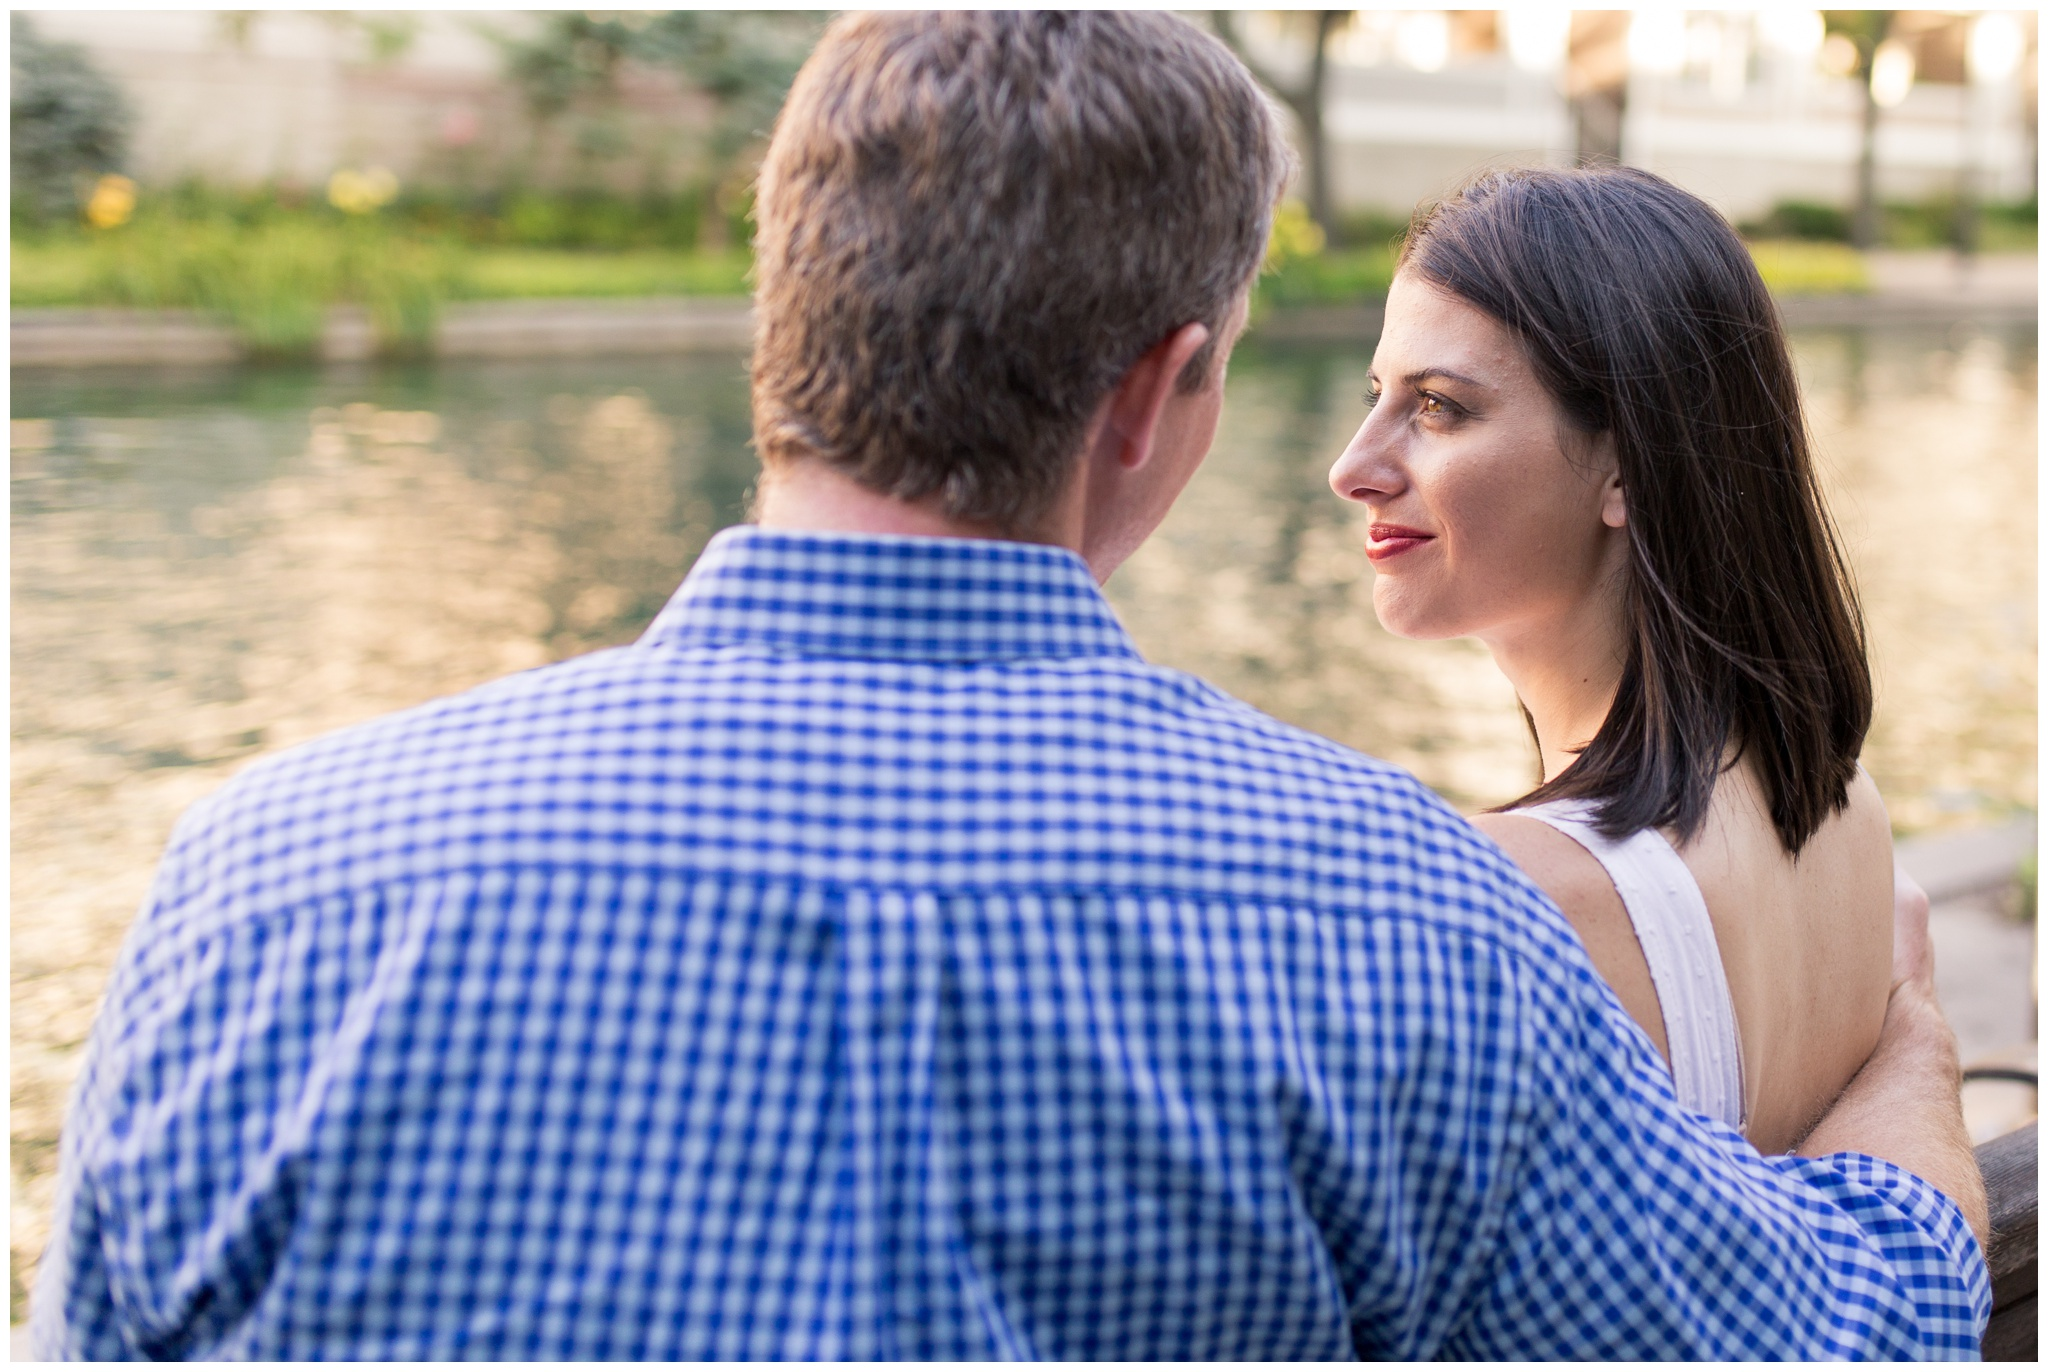 Downtown Indy couples photo session